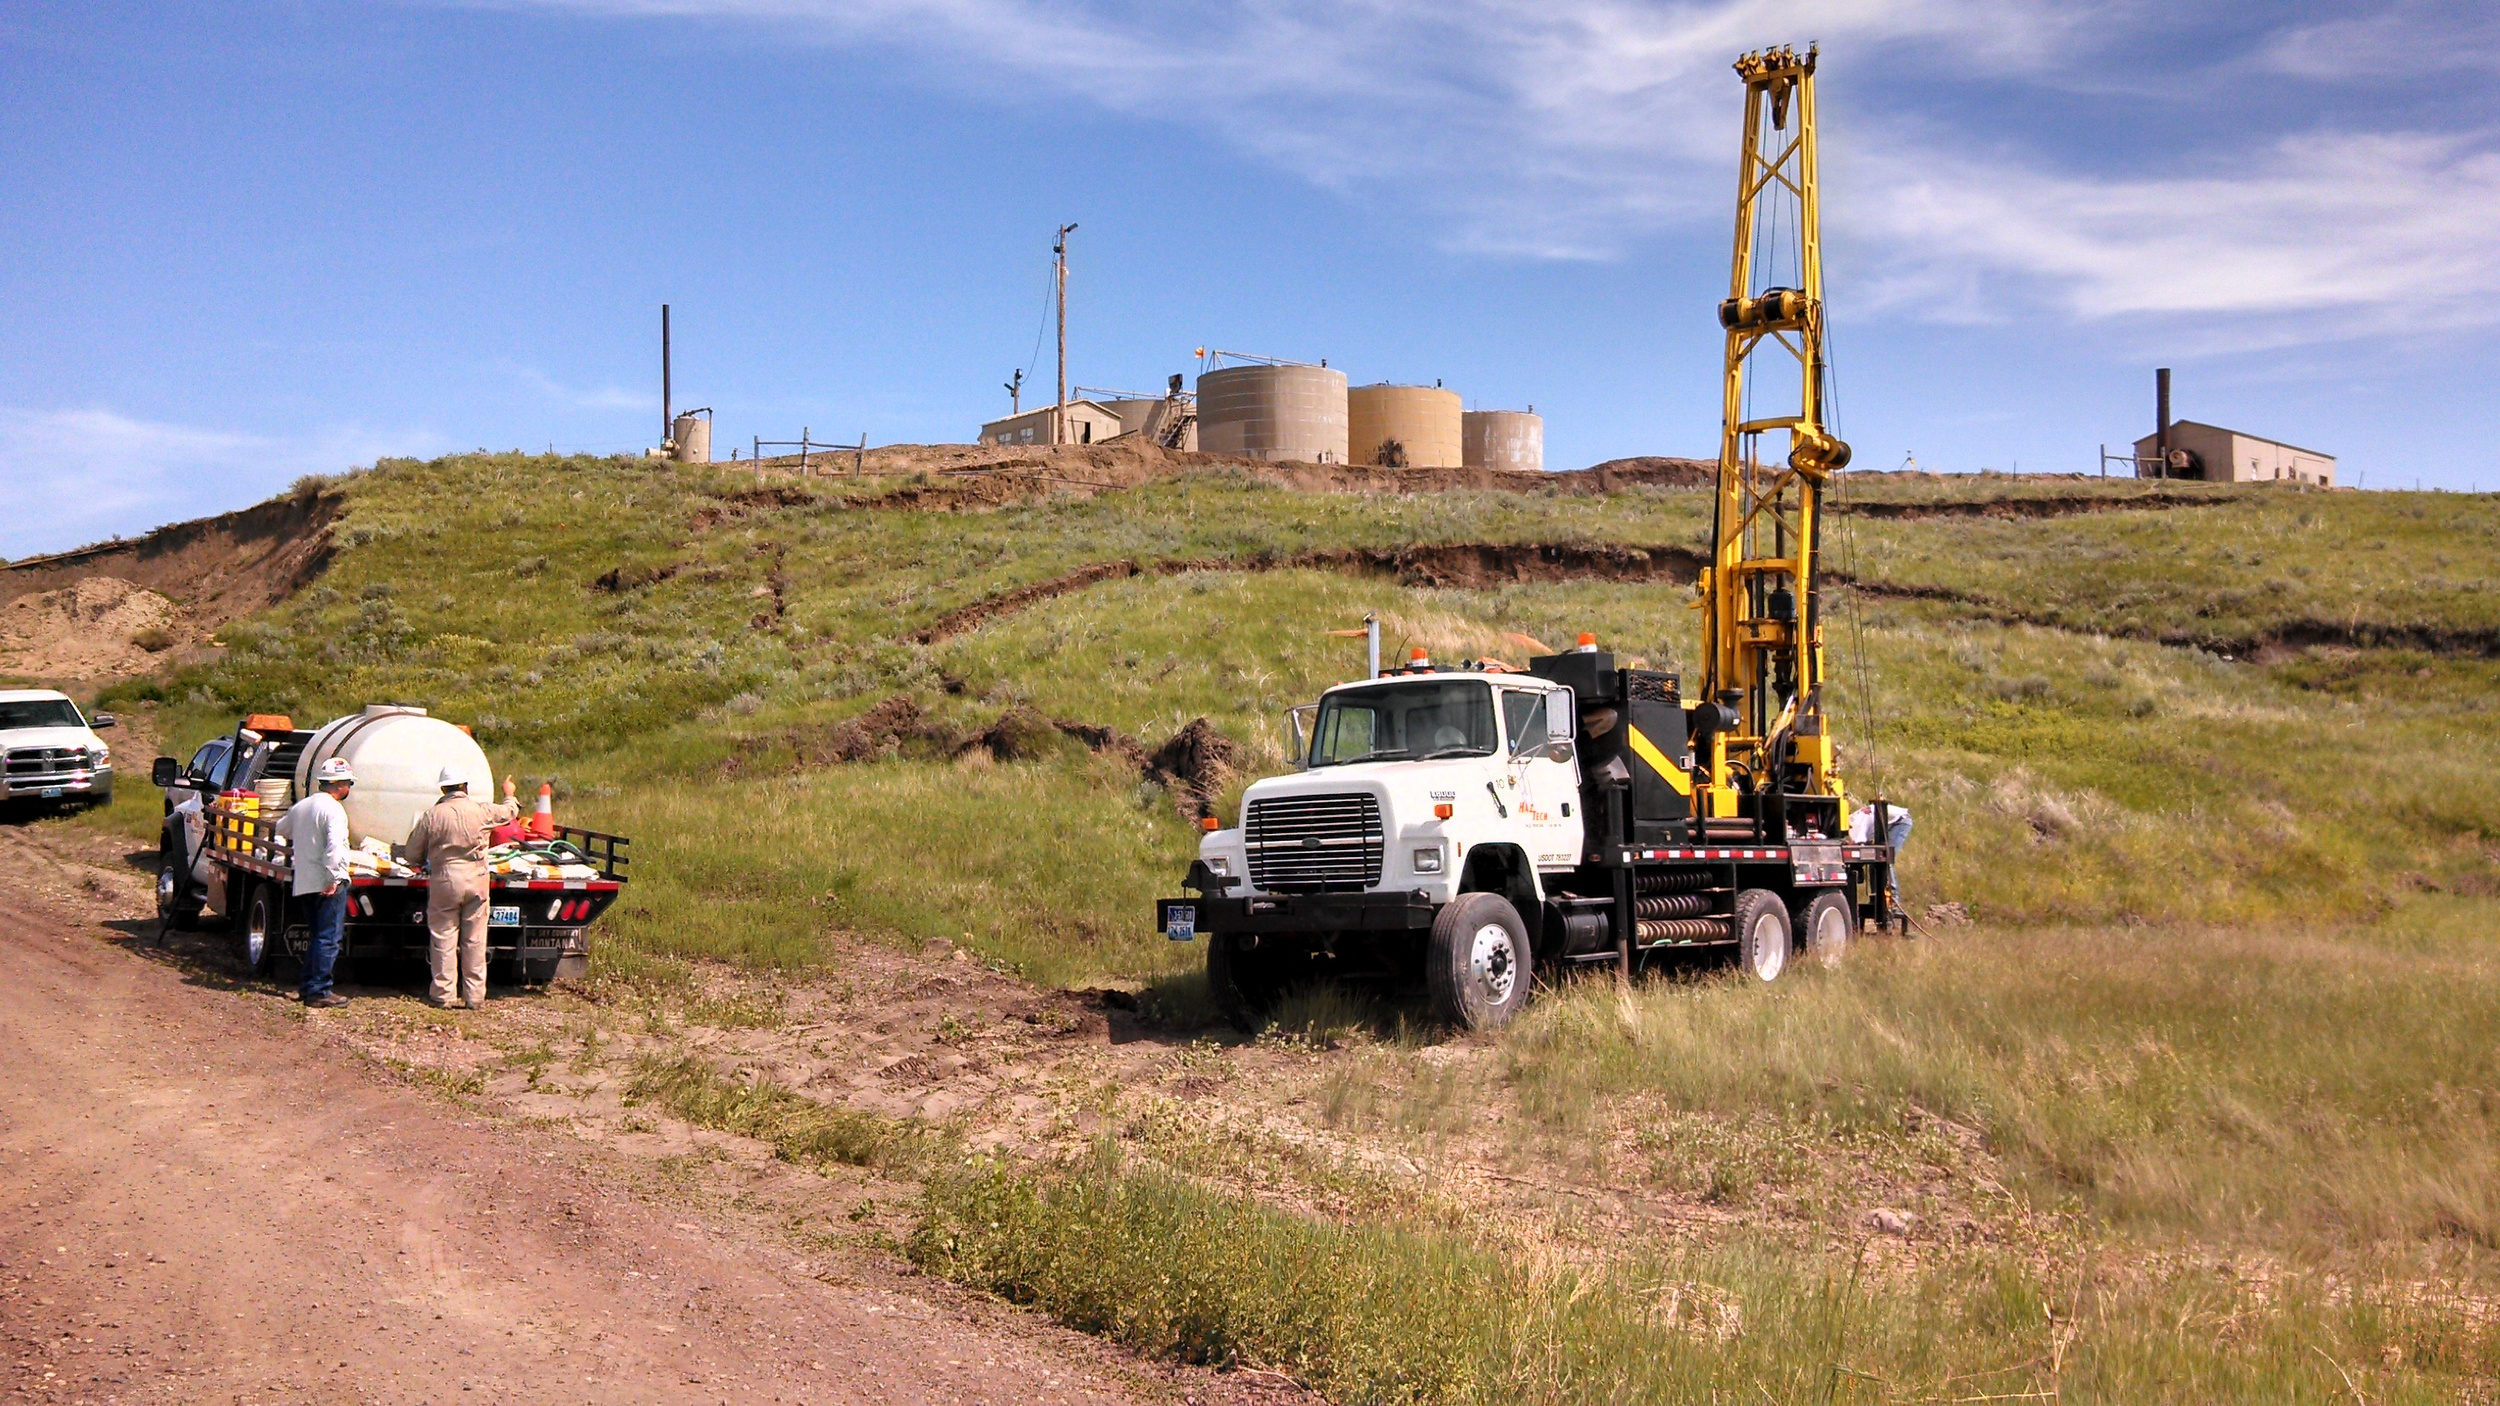 Geotechnical Investigation of slump at oil production tank battery